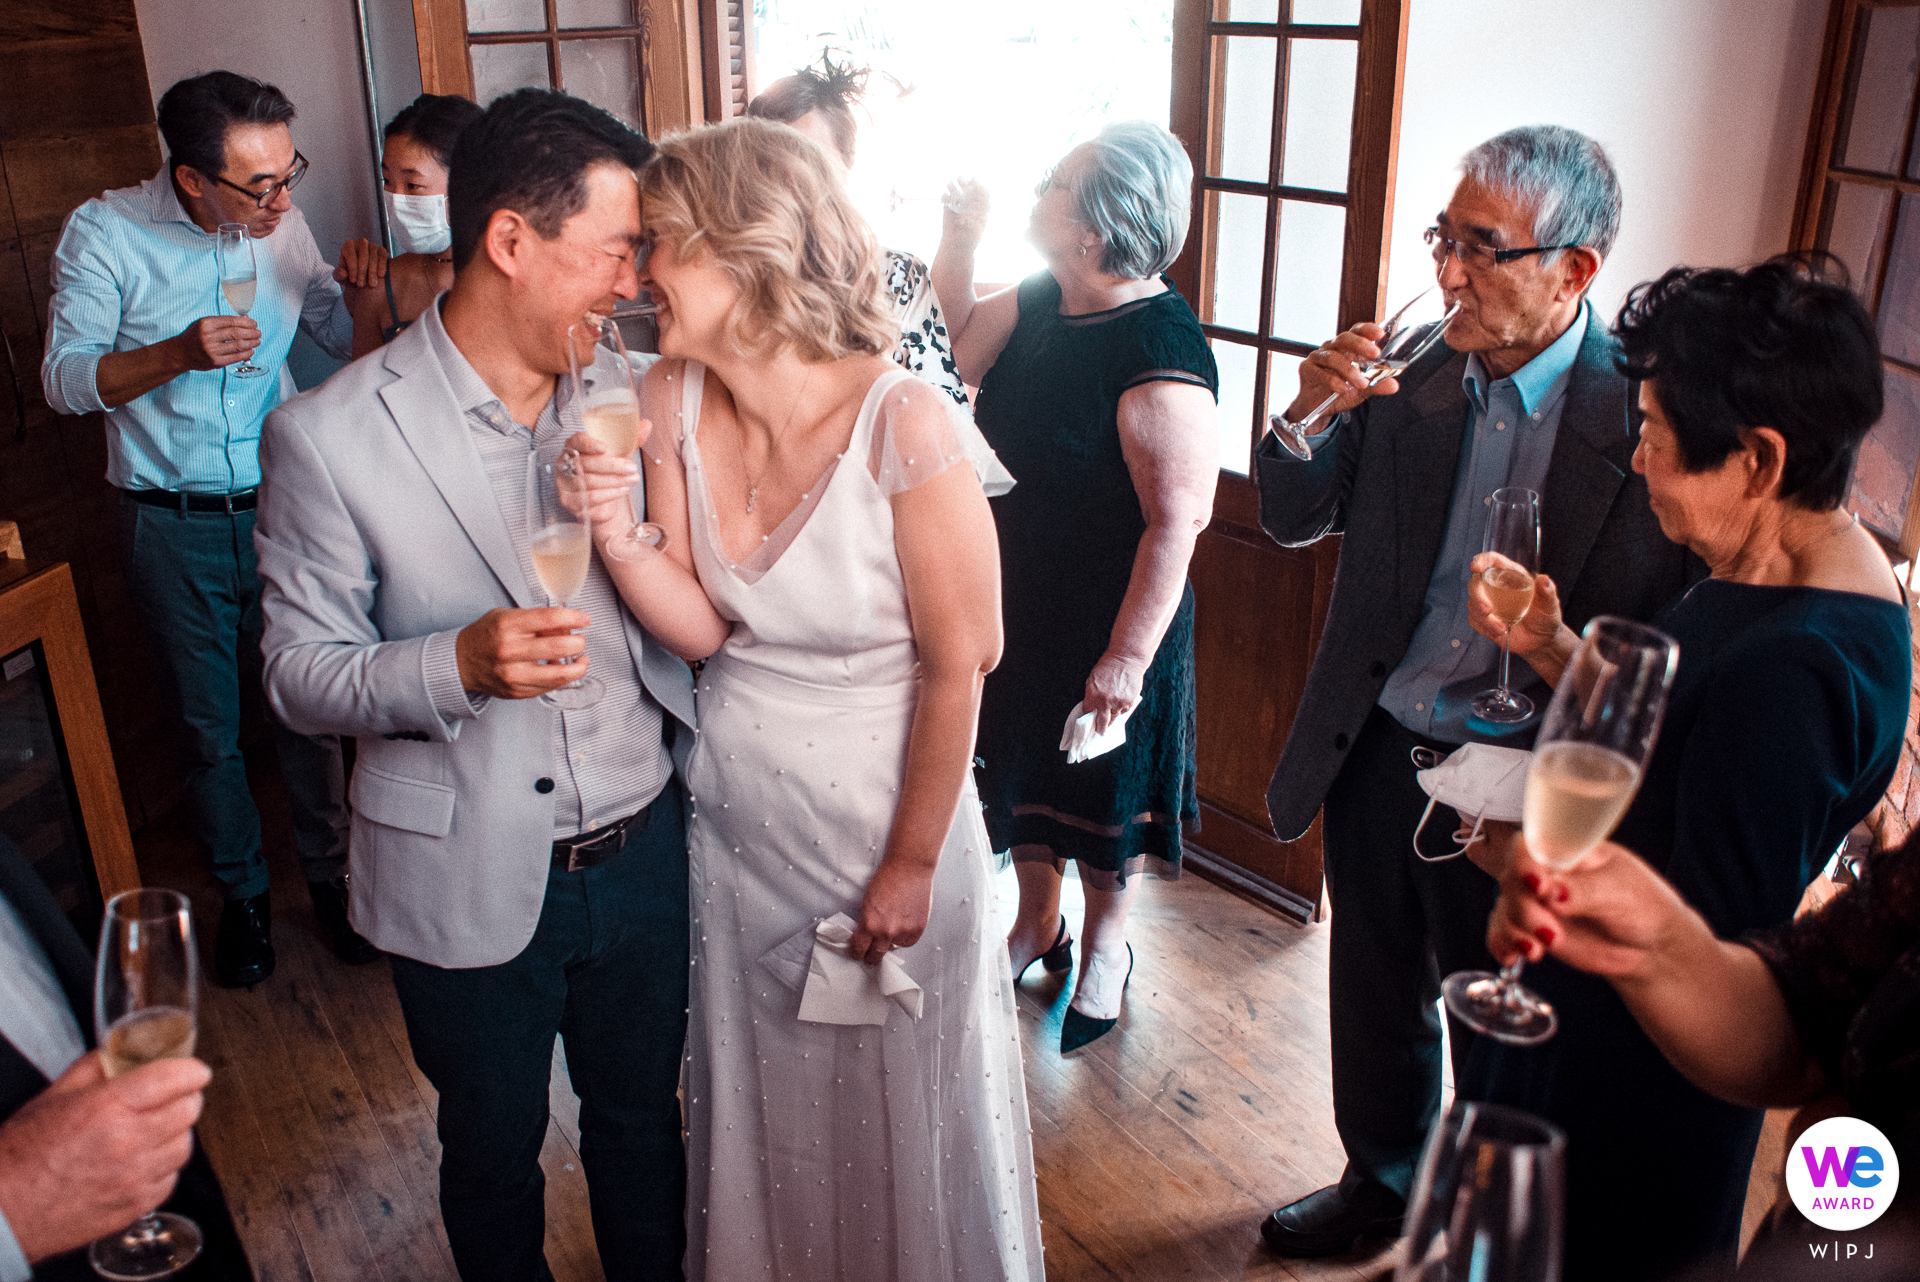 Photography of Small Weddings | After the ceremony, a big toast to the bride and groom with drinks